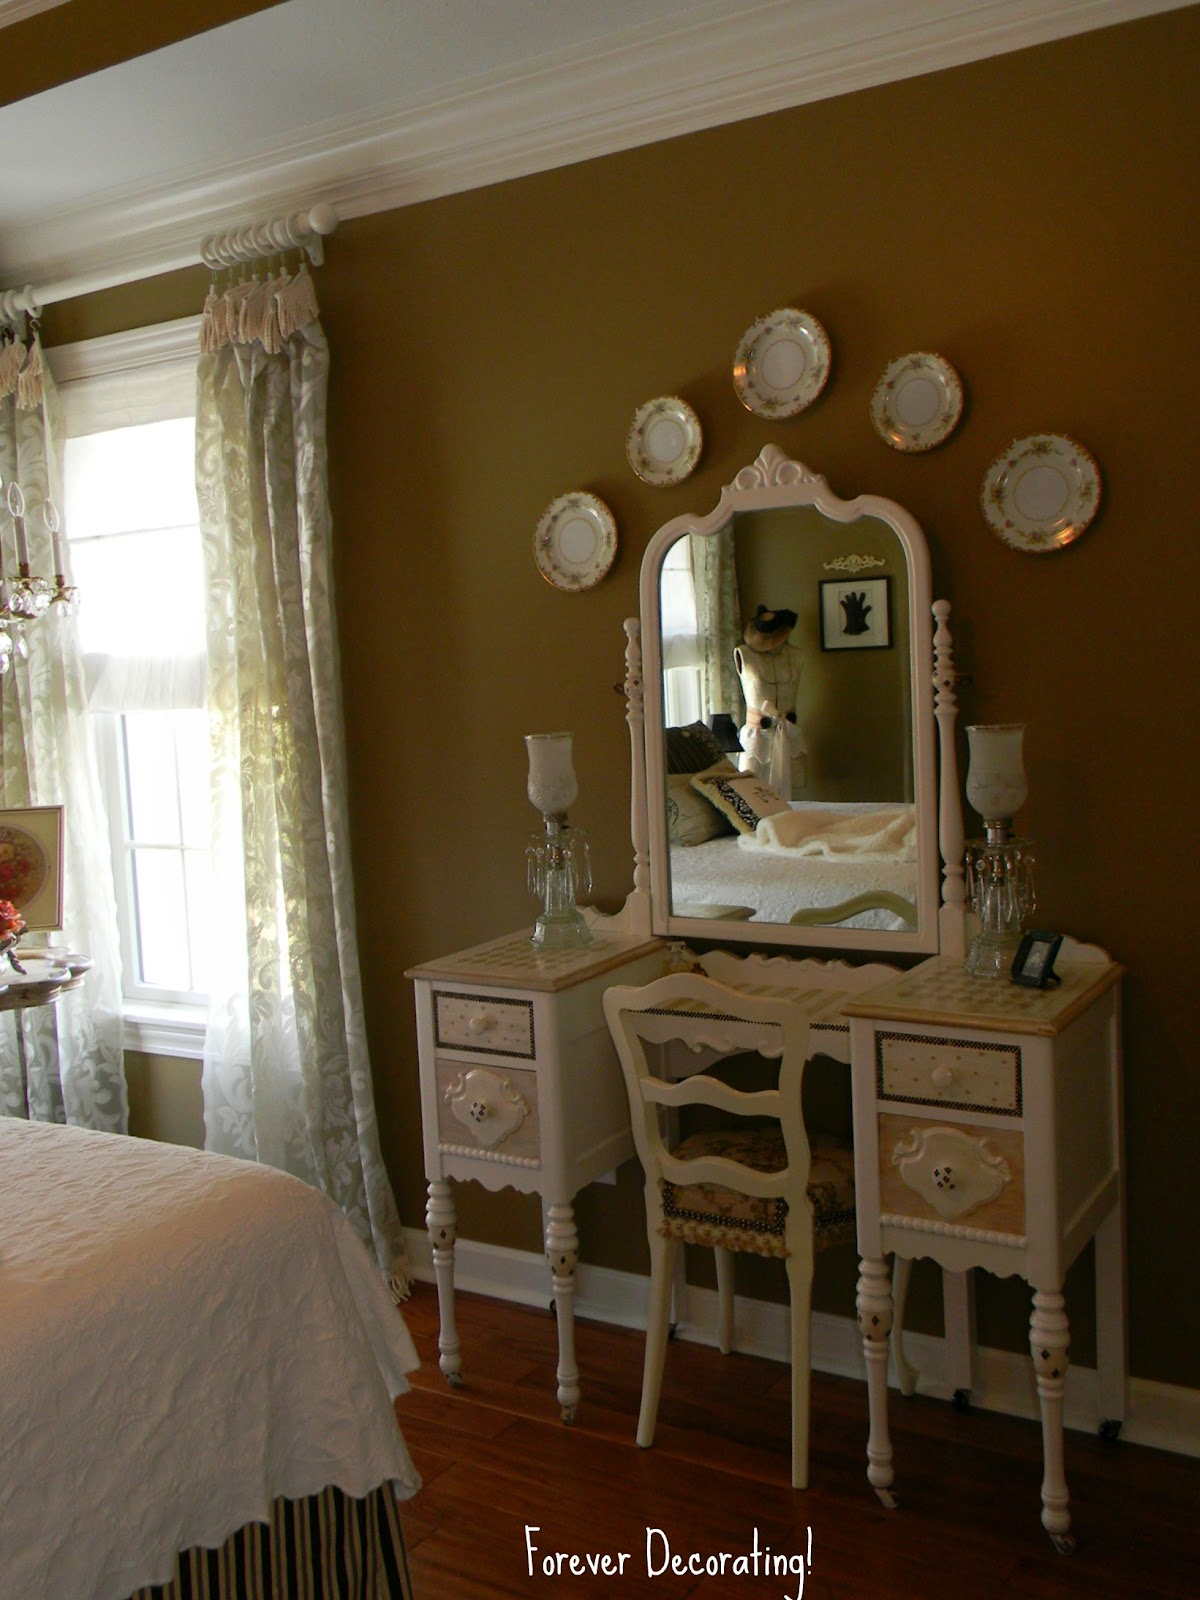 Forever decorating is it a desk or a vanity Vanity for master bedroom